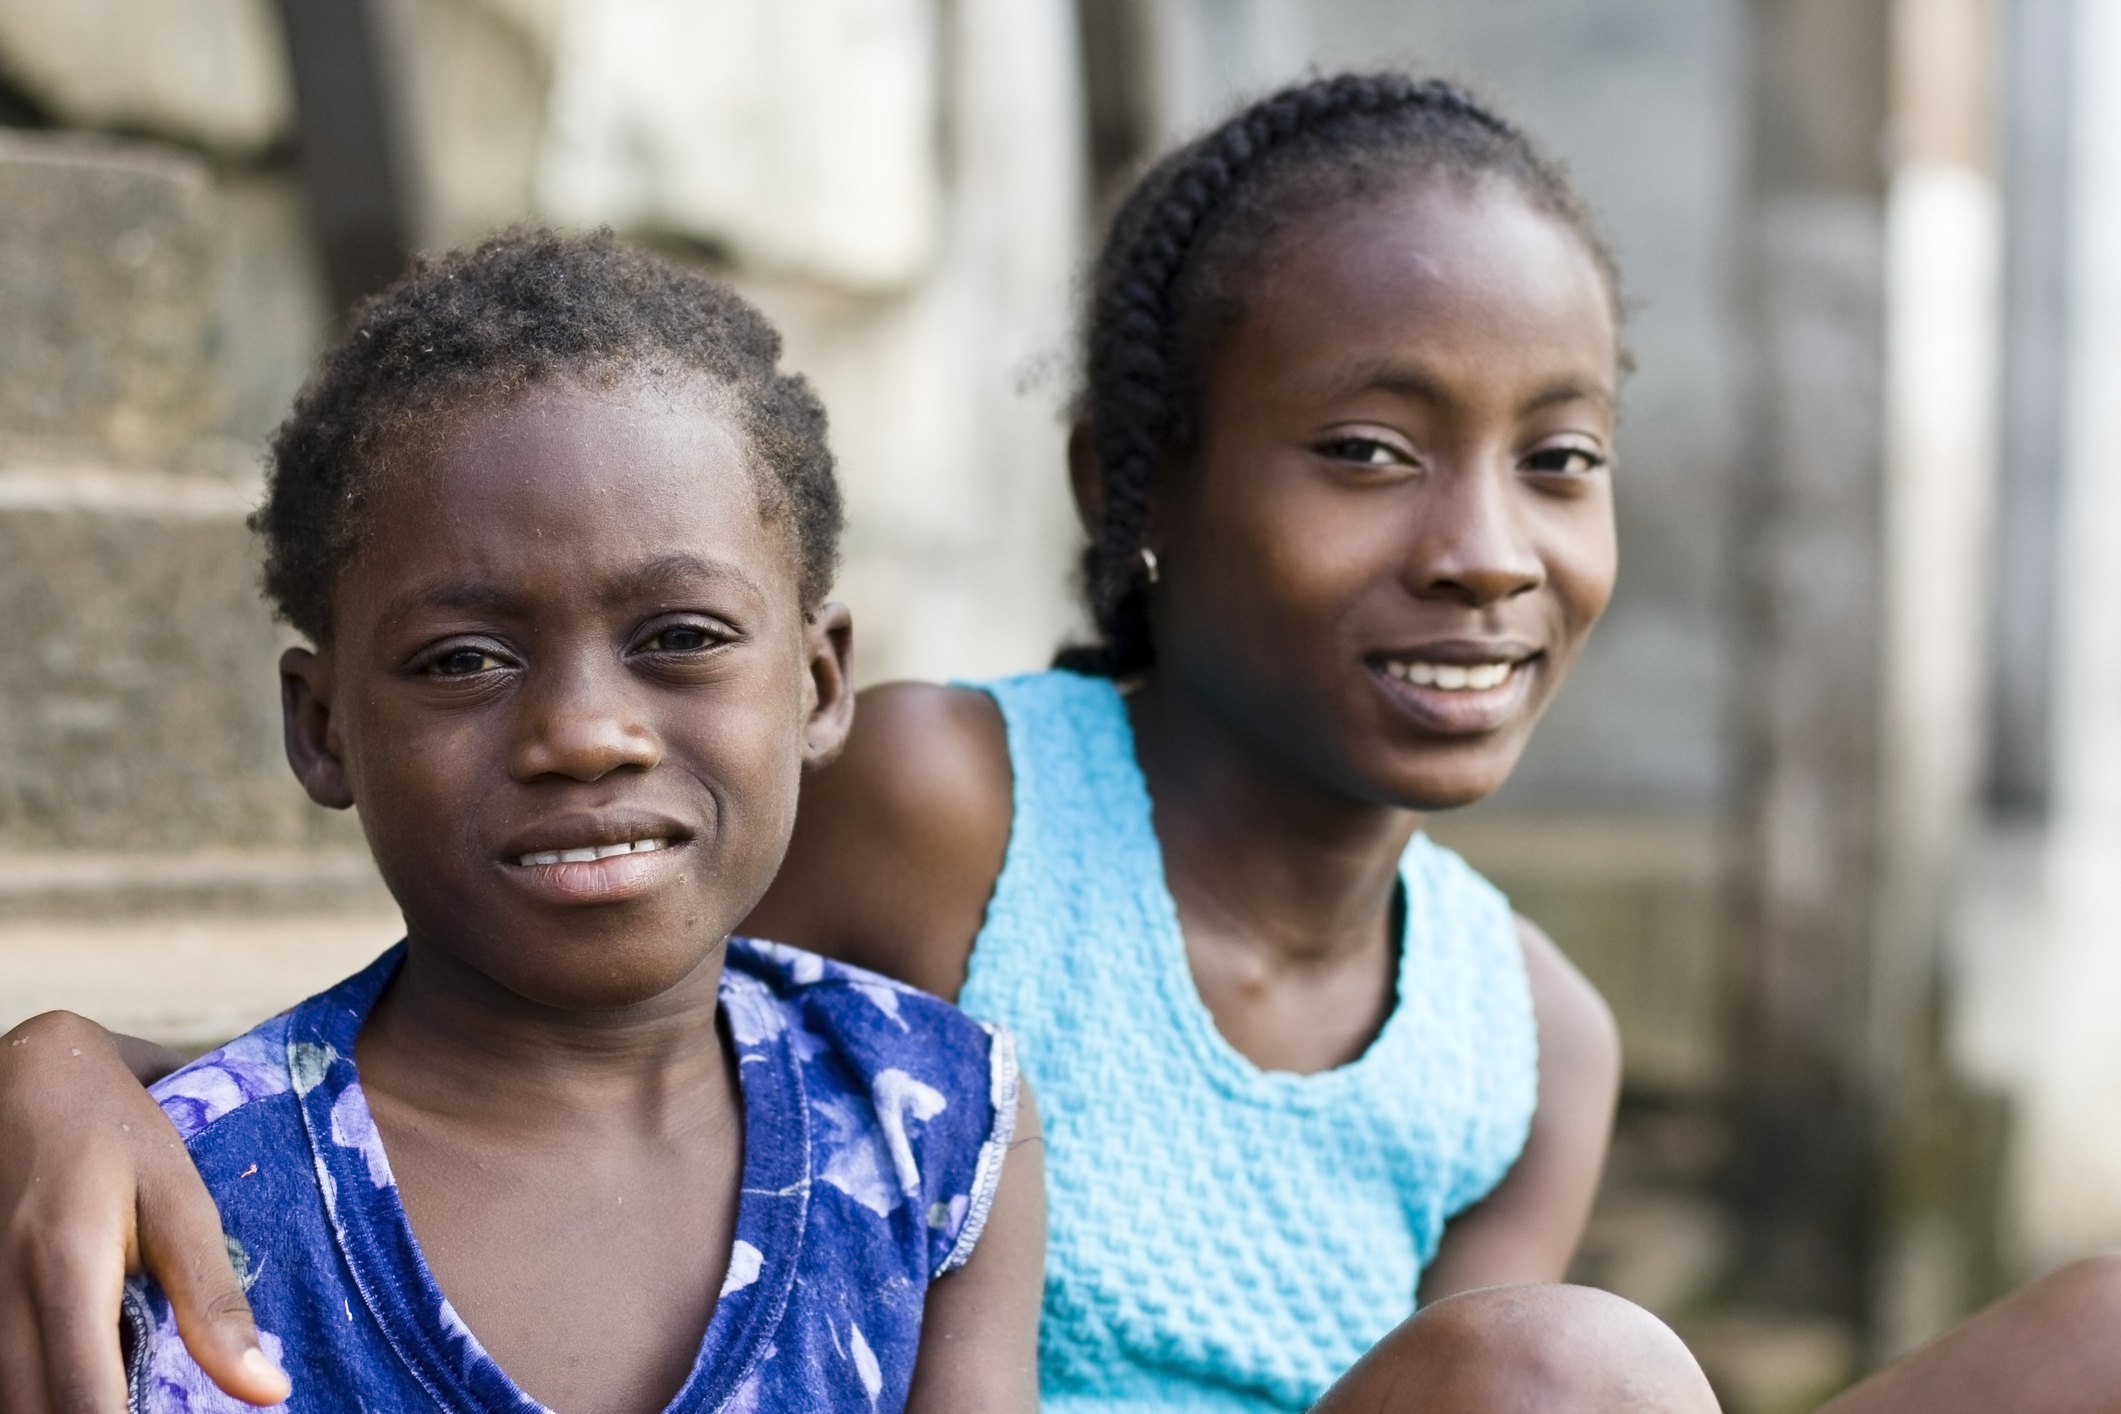 Two African girls smiling at the camera.